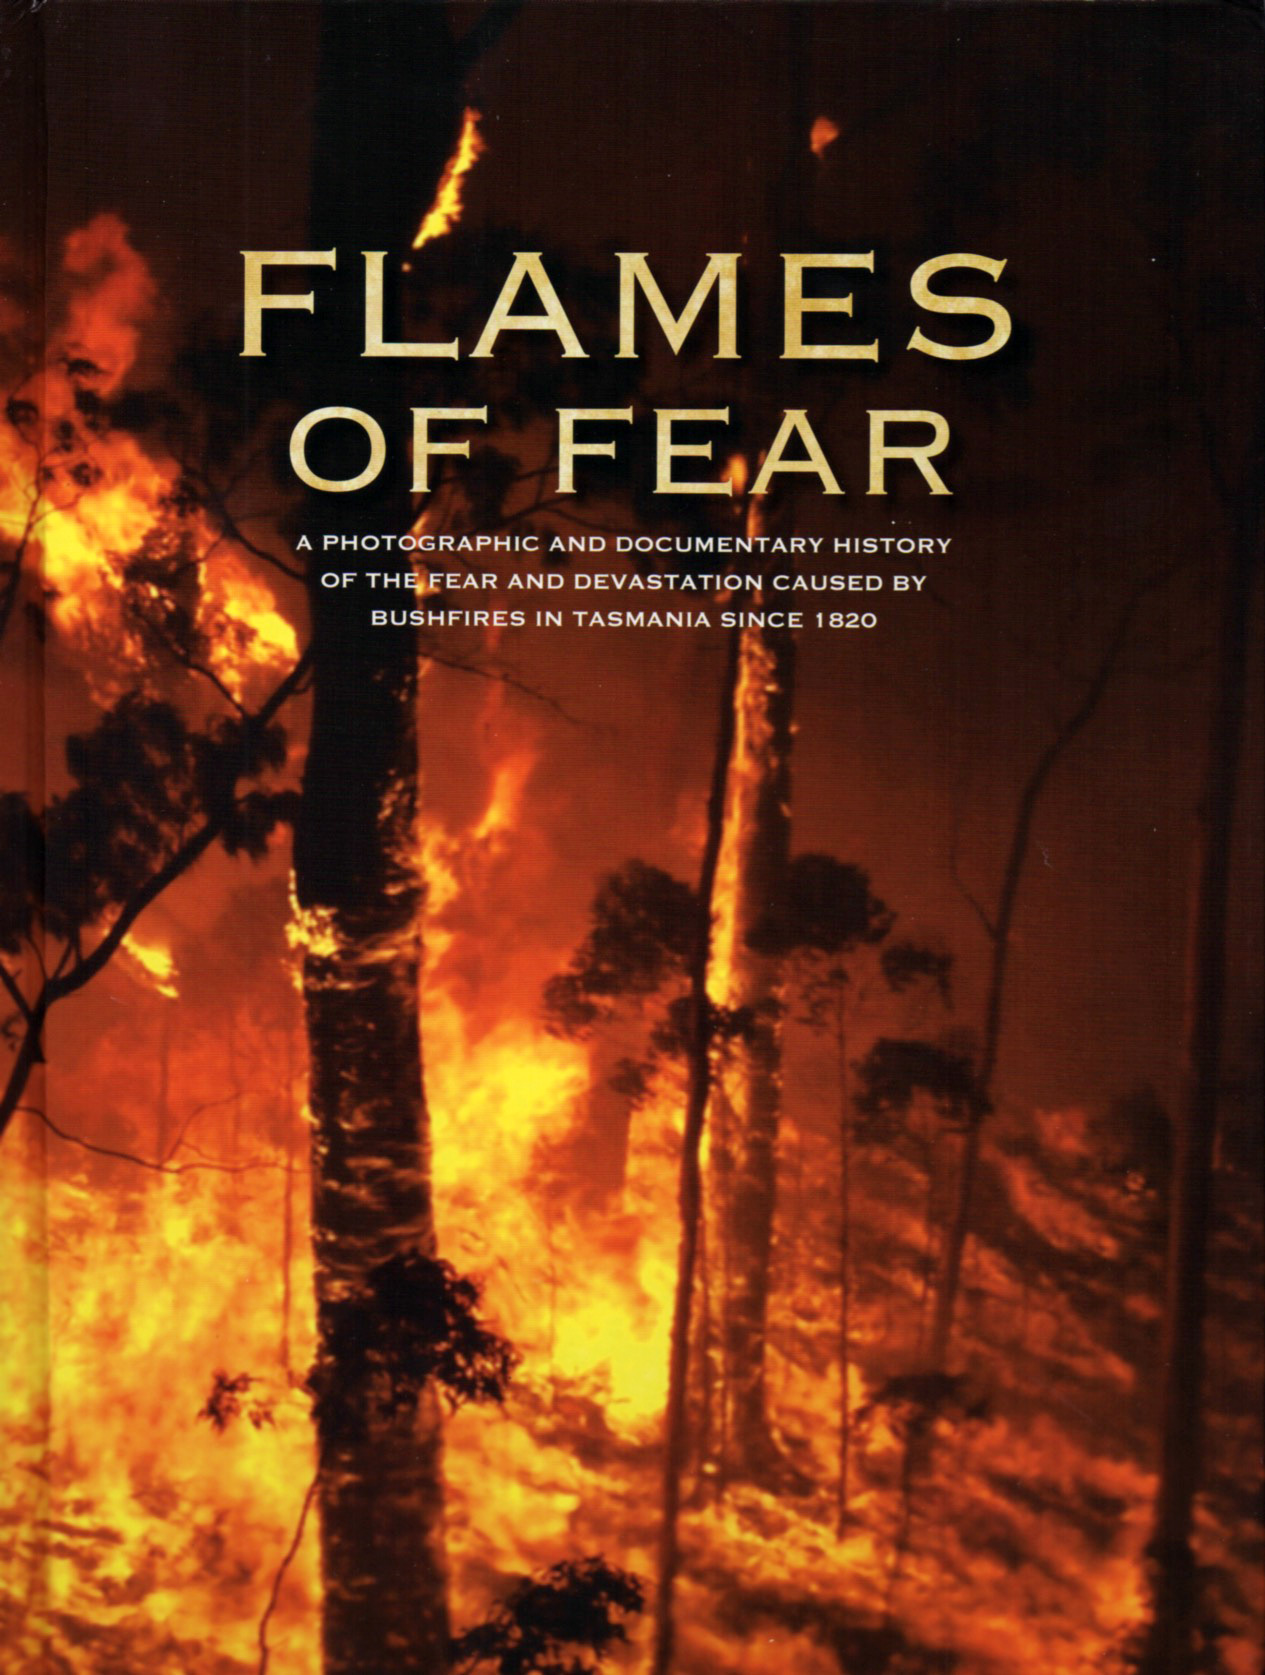 Flames of Fear - History of Tasmania's bushfire experiences